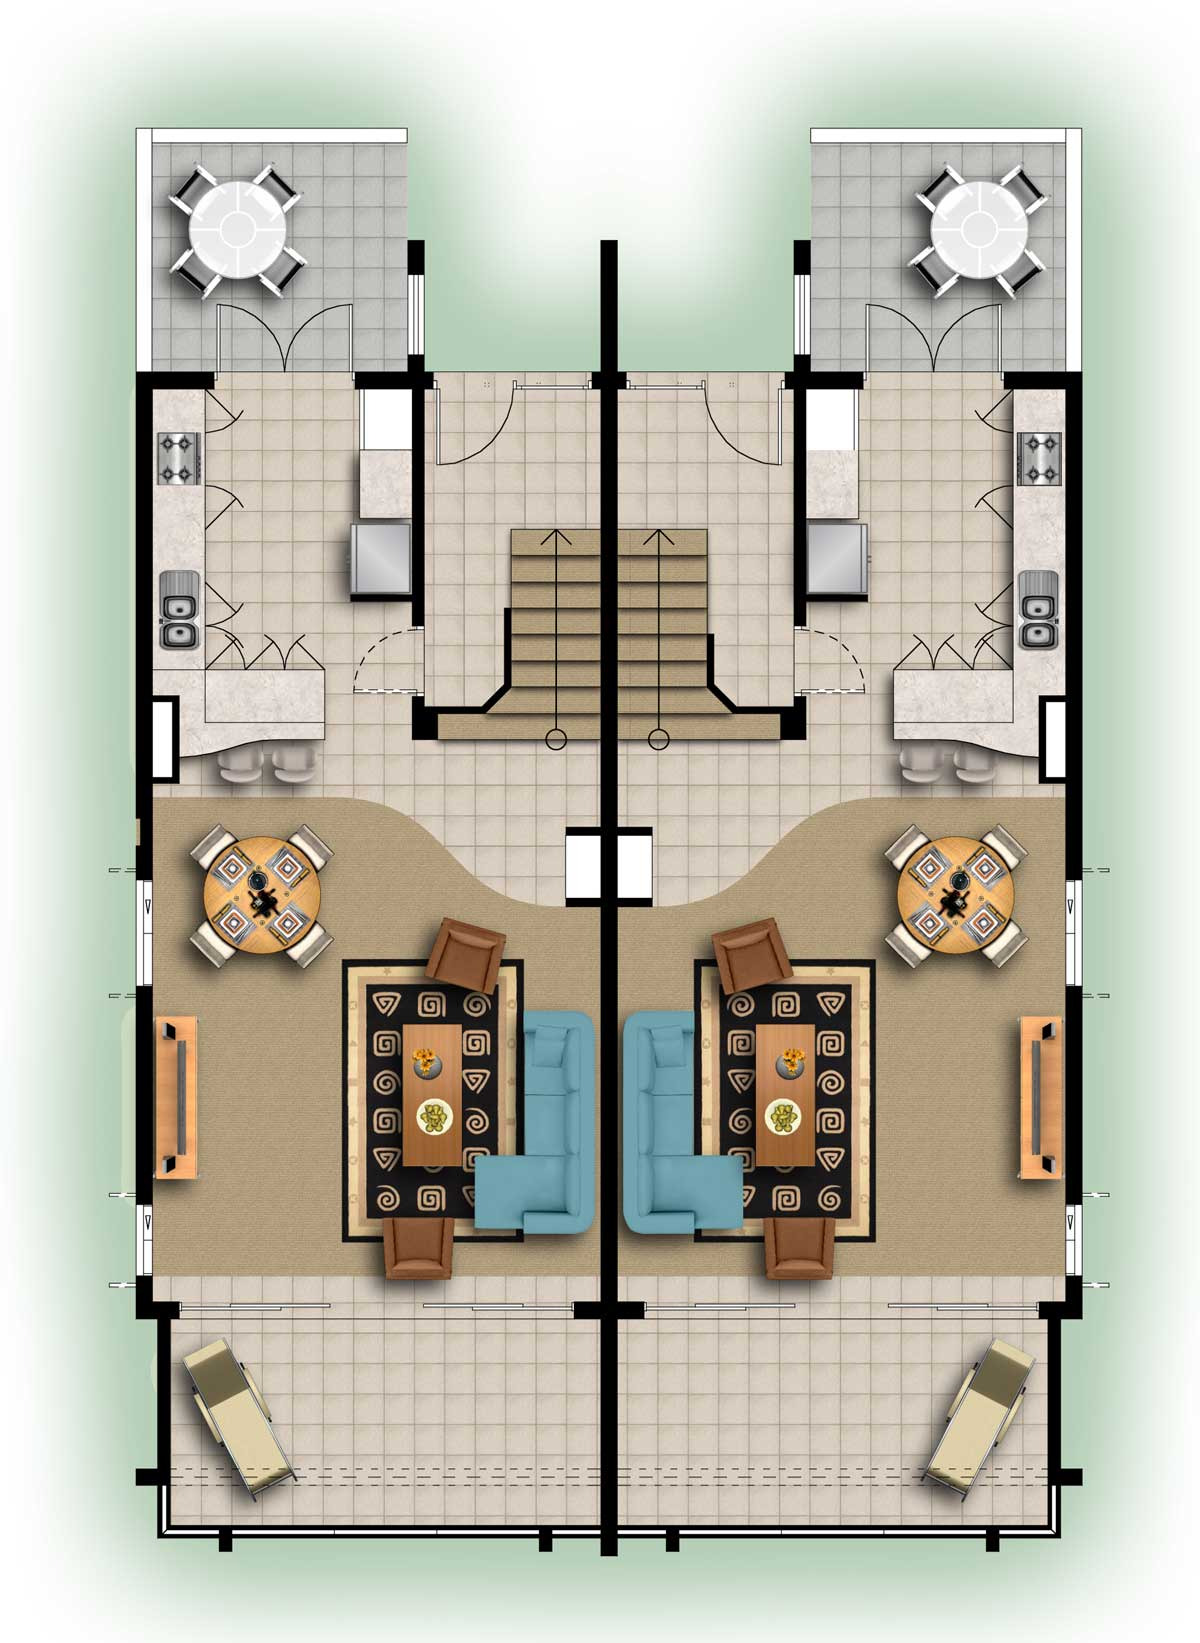 plan drawing floor plans online free amusing draw floor plan plus surronding for floor plan interior picture floor plans for a house